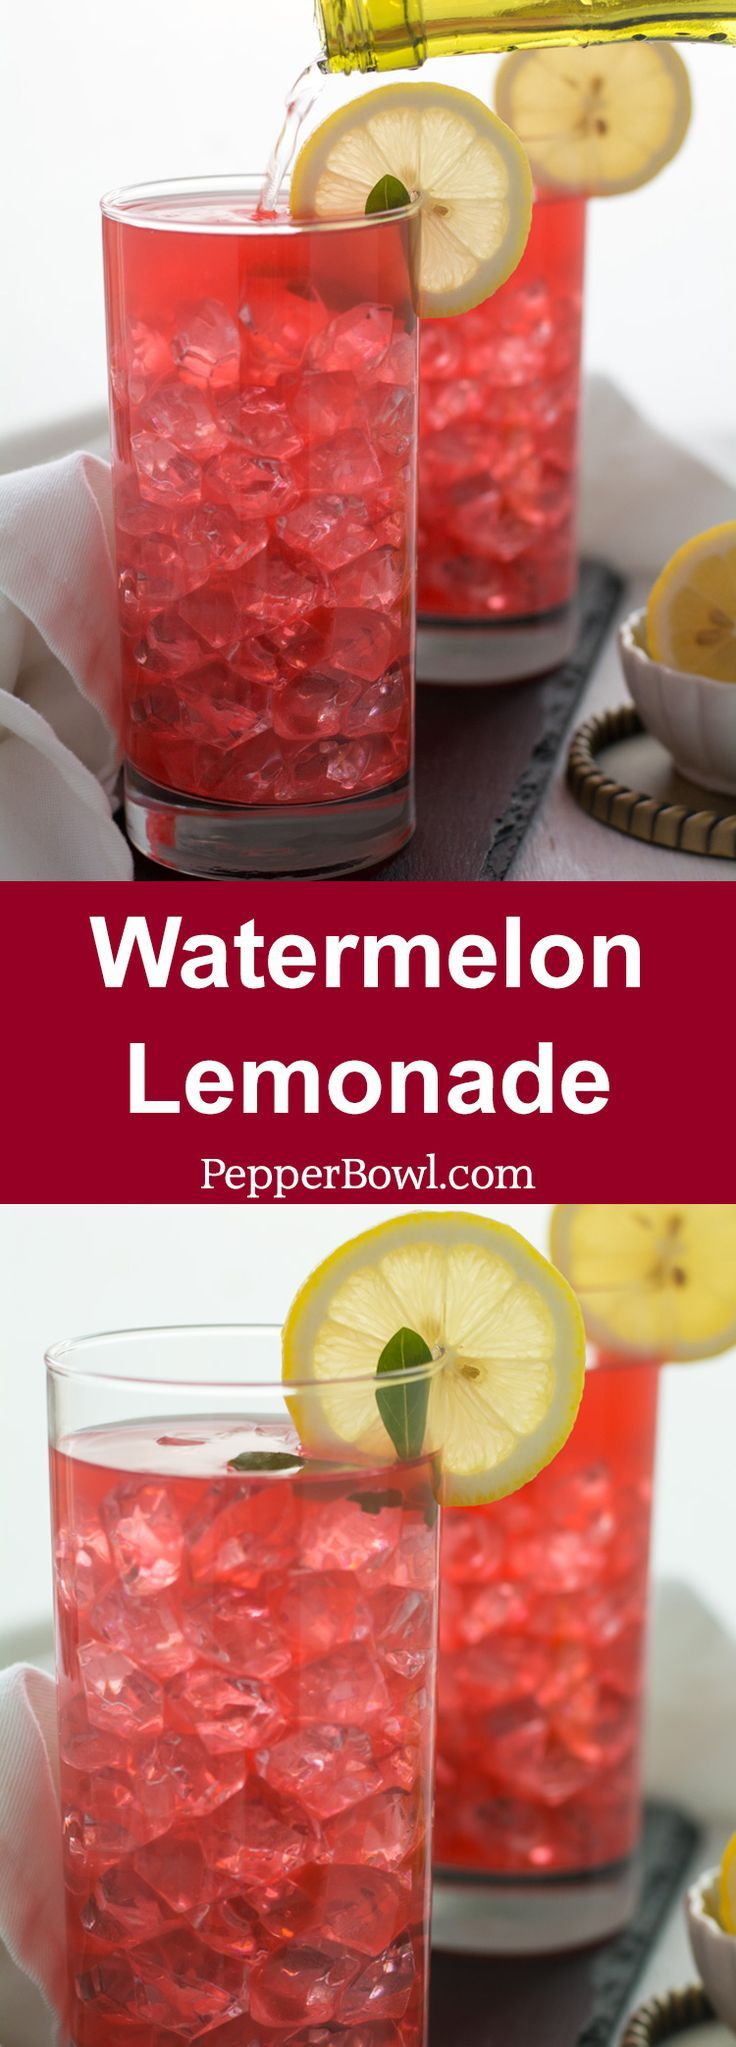 Watermelon Lemonade Recipe, super simple, great for parties and large gatherings. Very healthy and refreshing drink. | pepperbowl.com via @pepperbowl